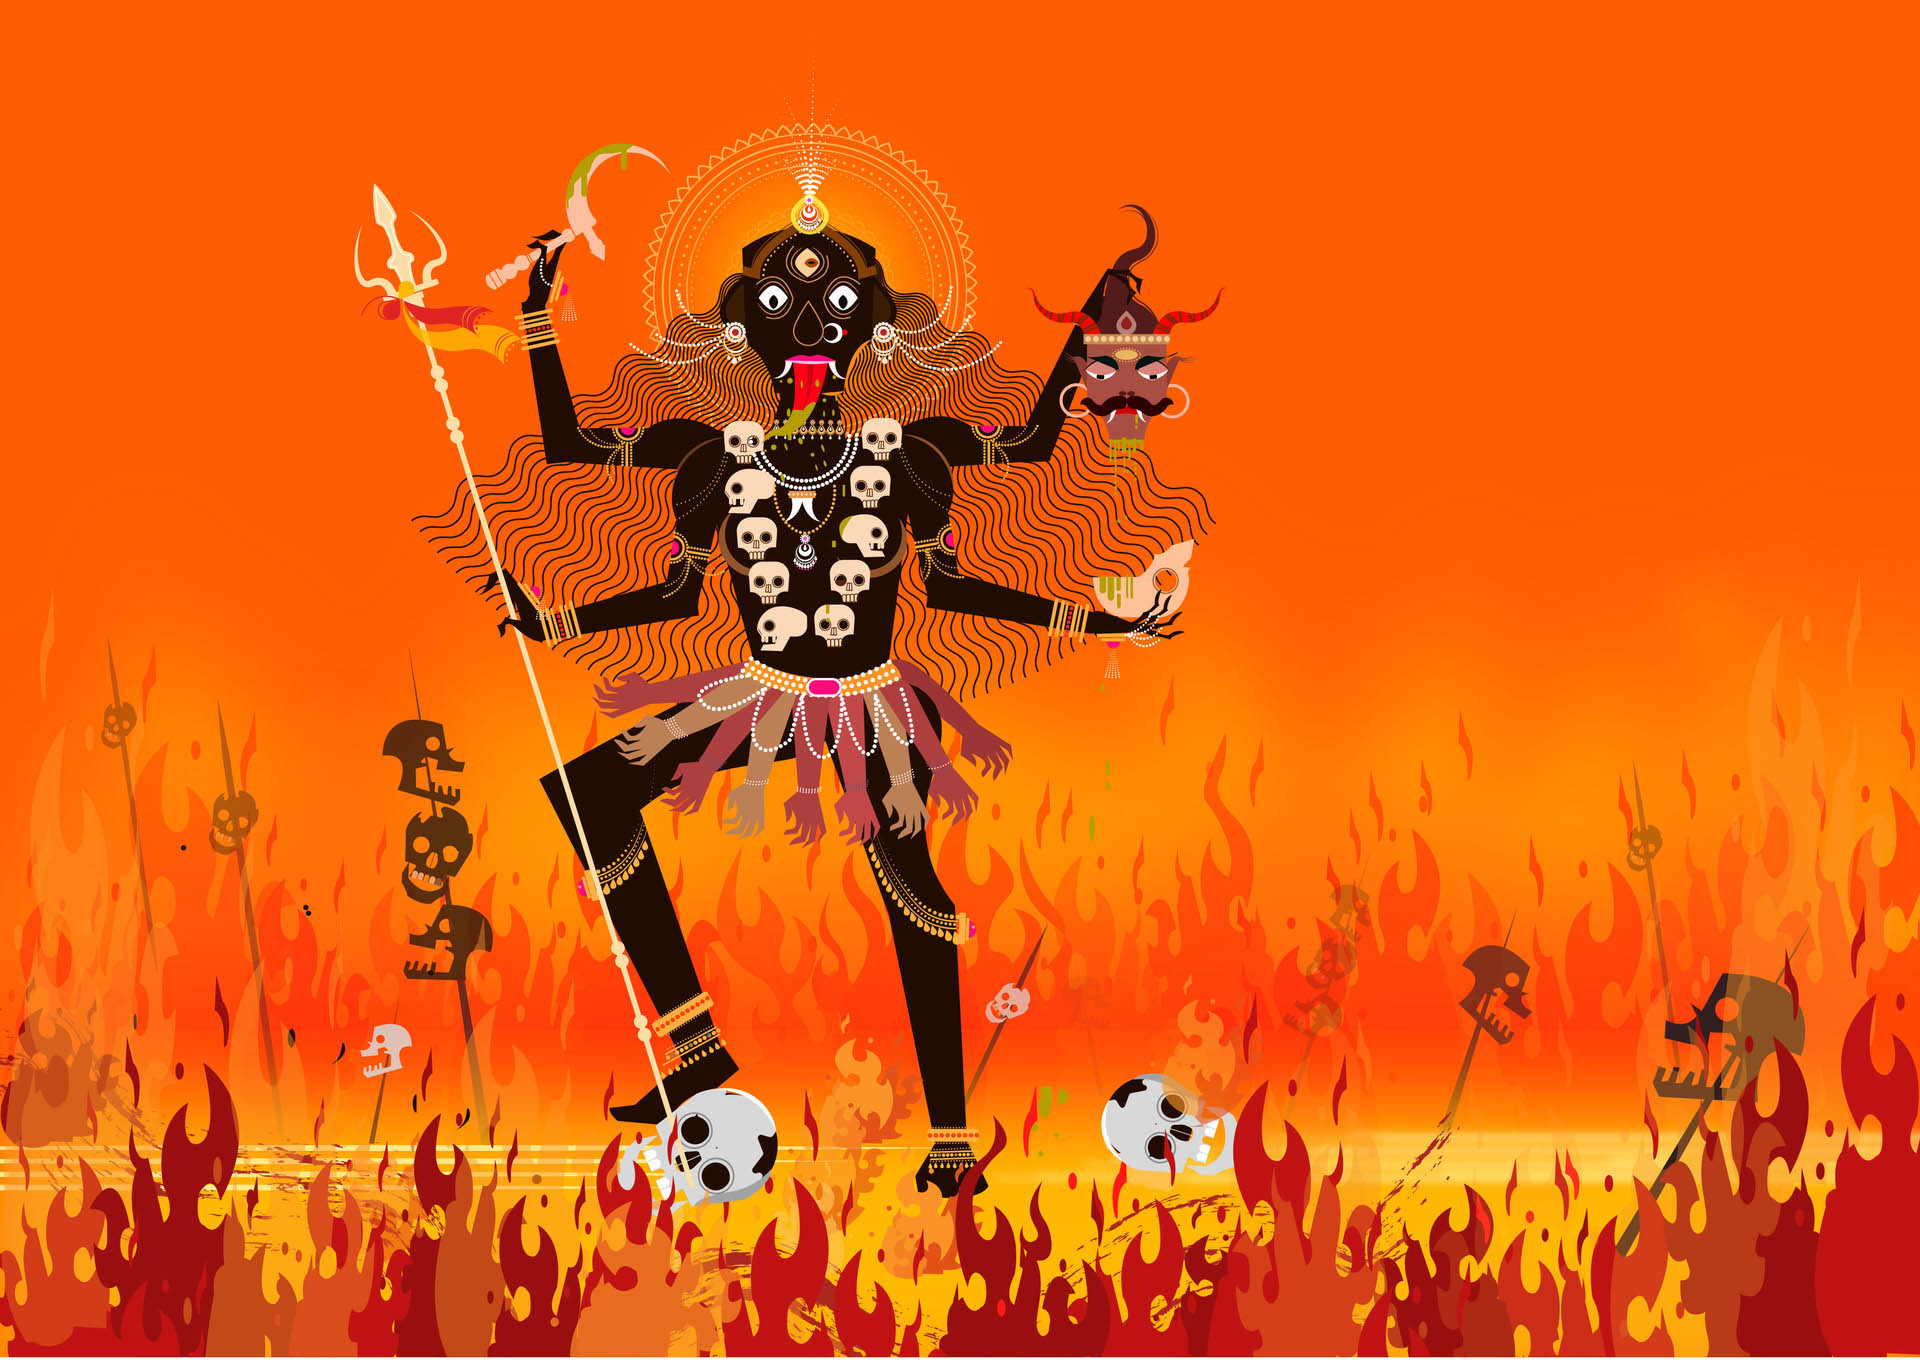 digital art kali by ram bhangad